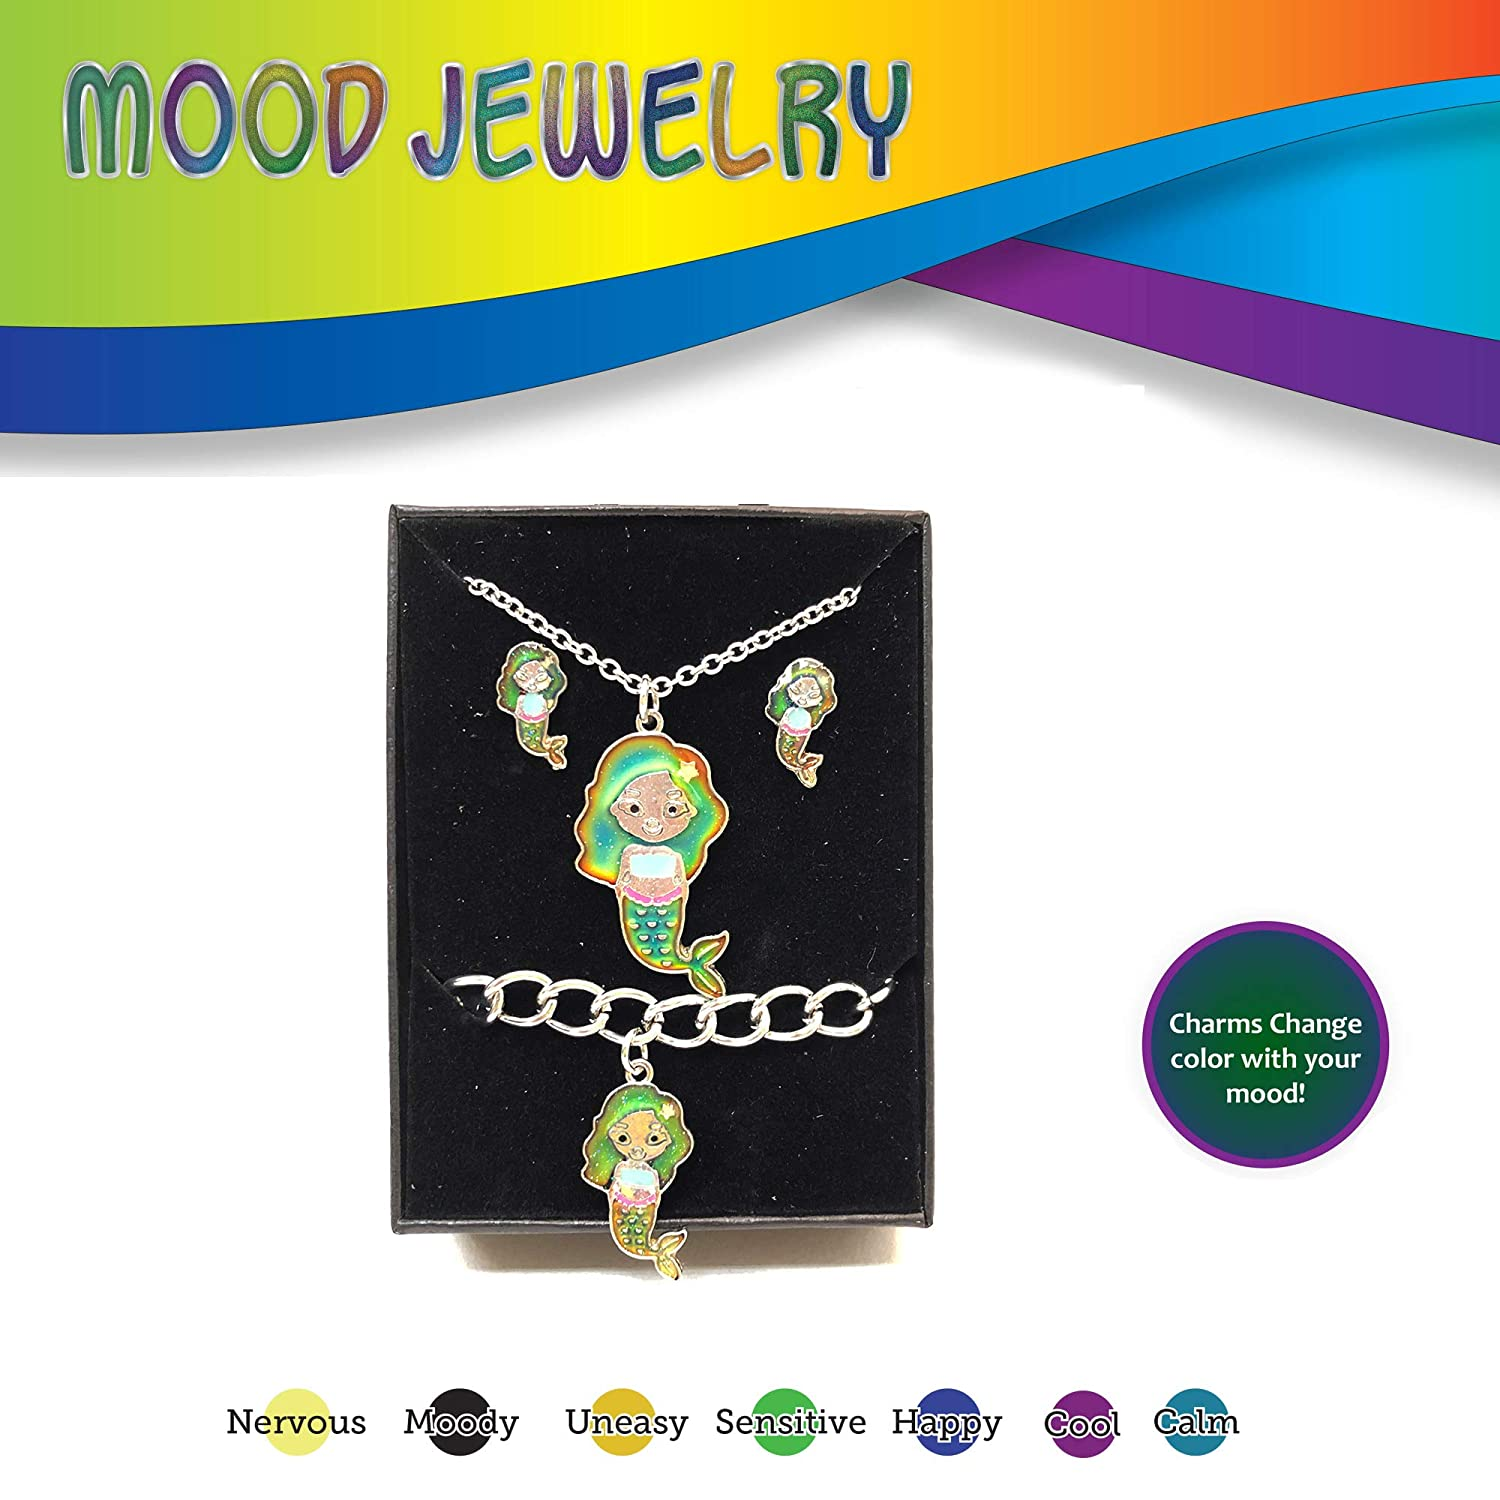 FROG SAC Mood Bracelet Necklace and Earrings Gift Box for Girls Kids Tween 3 PCs Set Unicorns Color Changing Fashion Jewelry Set Girl Birthday Present Valentines Day Great as Party Favors Valentine/'s Day